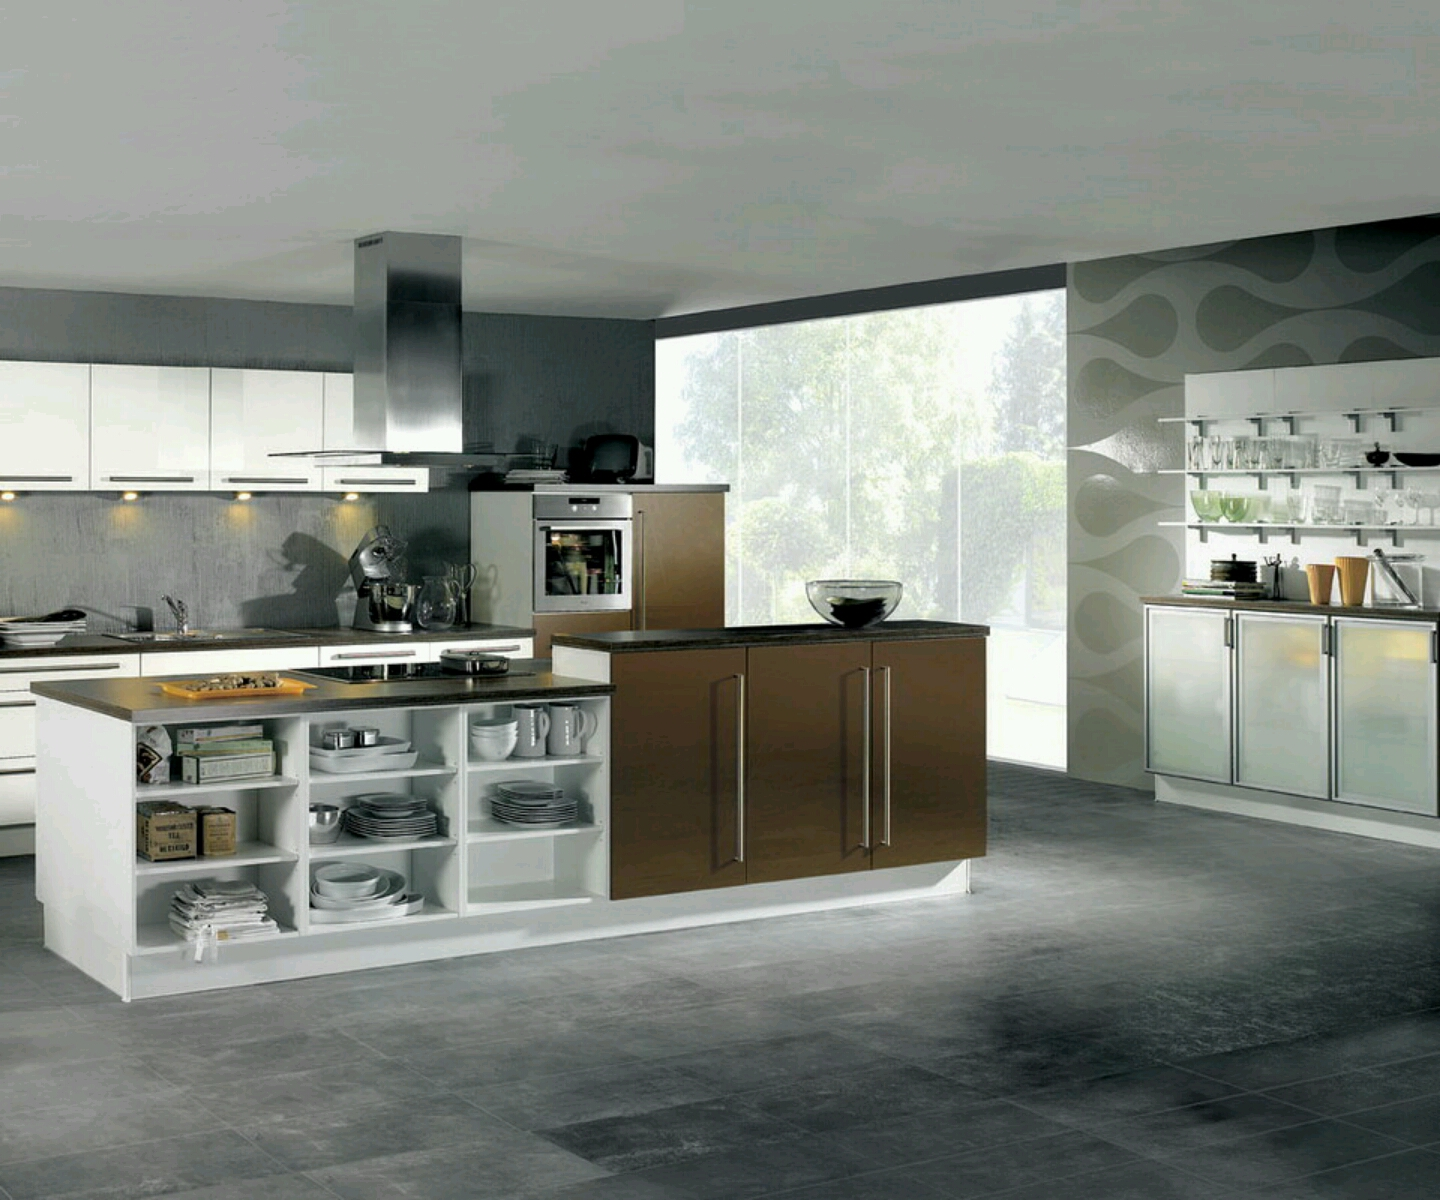 ultra modern kitchen designs ideas. | new home designs